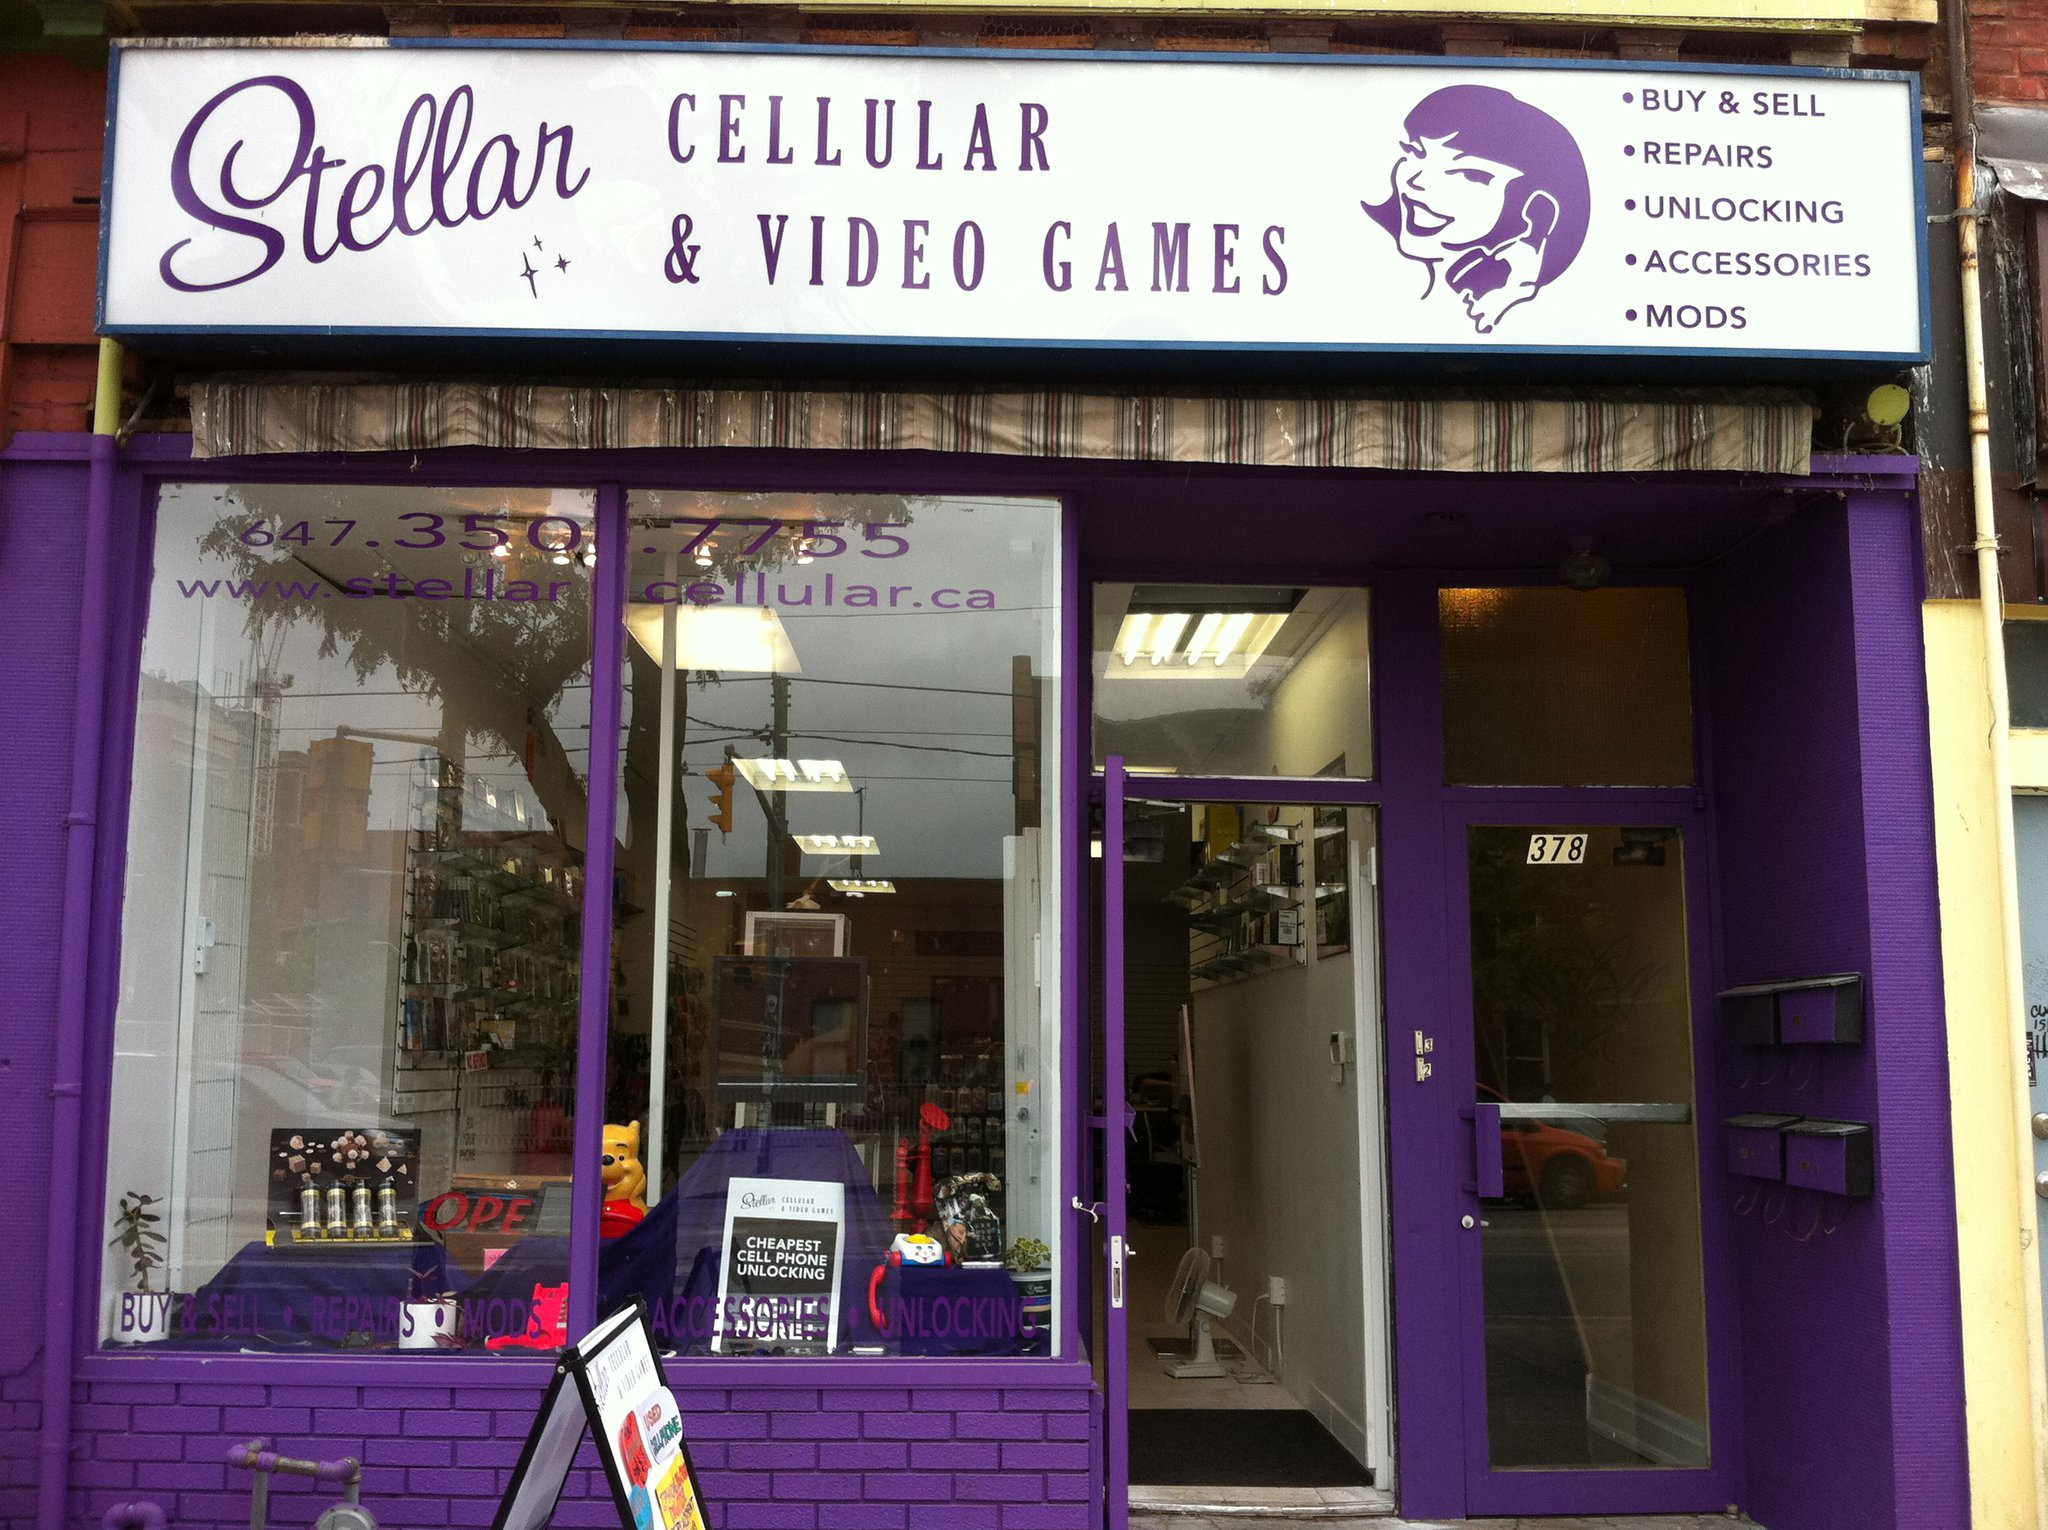 Photo of Stellar Cellular's Storefront